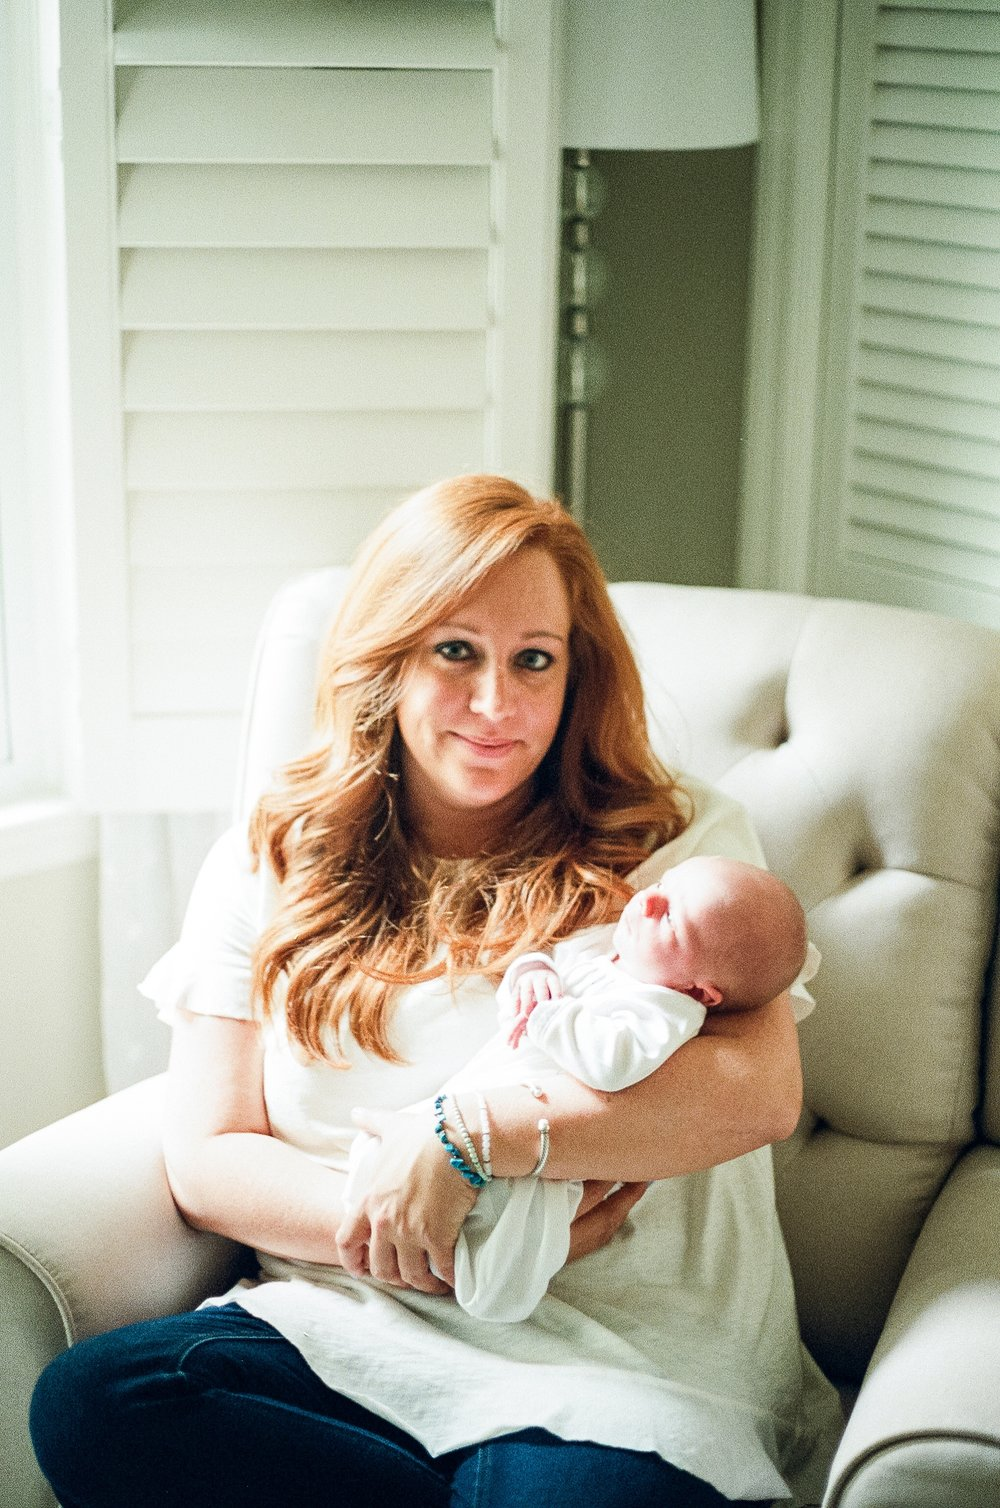 atlanta-georgia-film-lifestyle-newborn-photographer-brooks-wilder-330.jpg